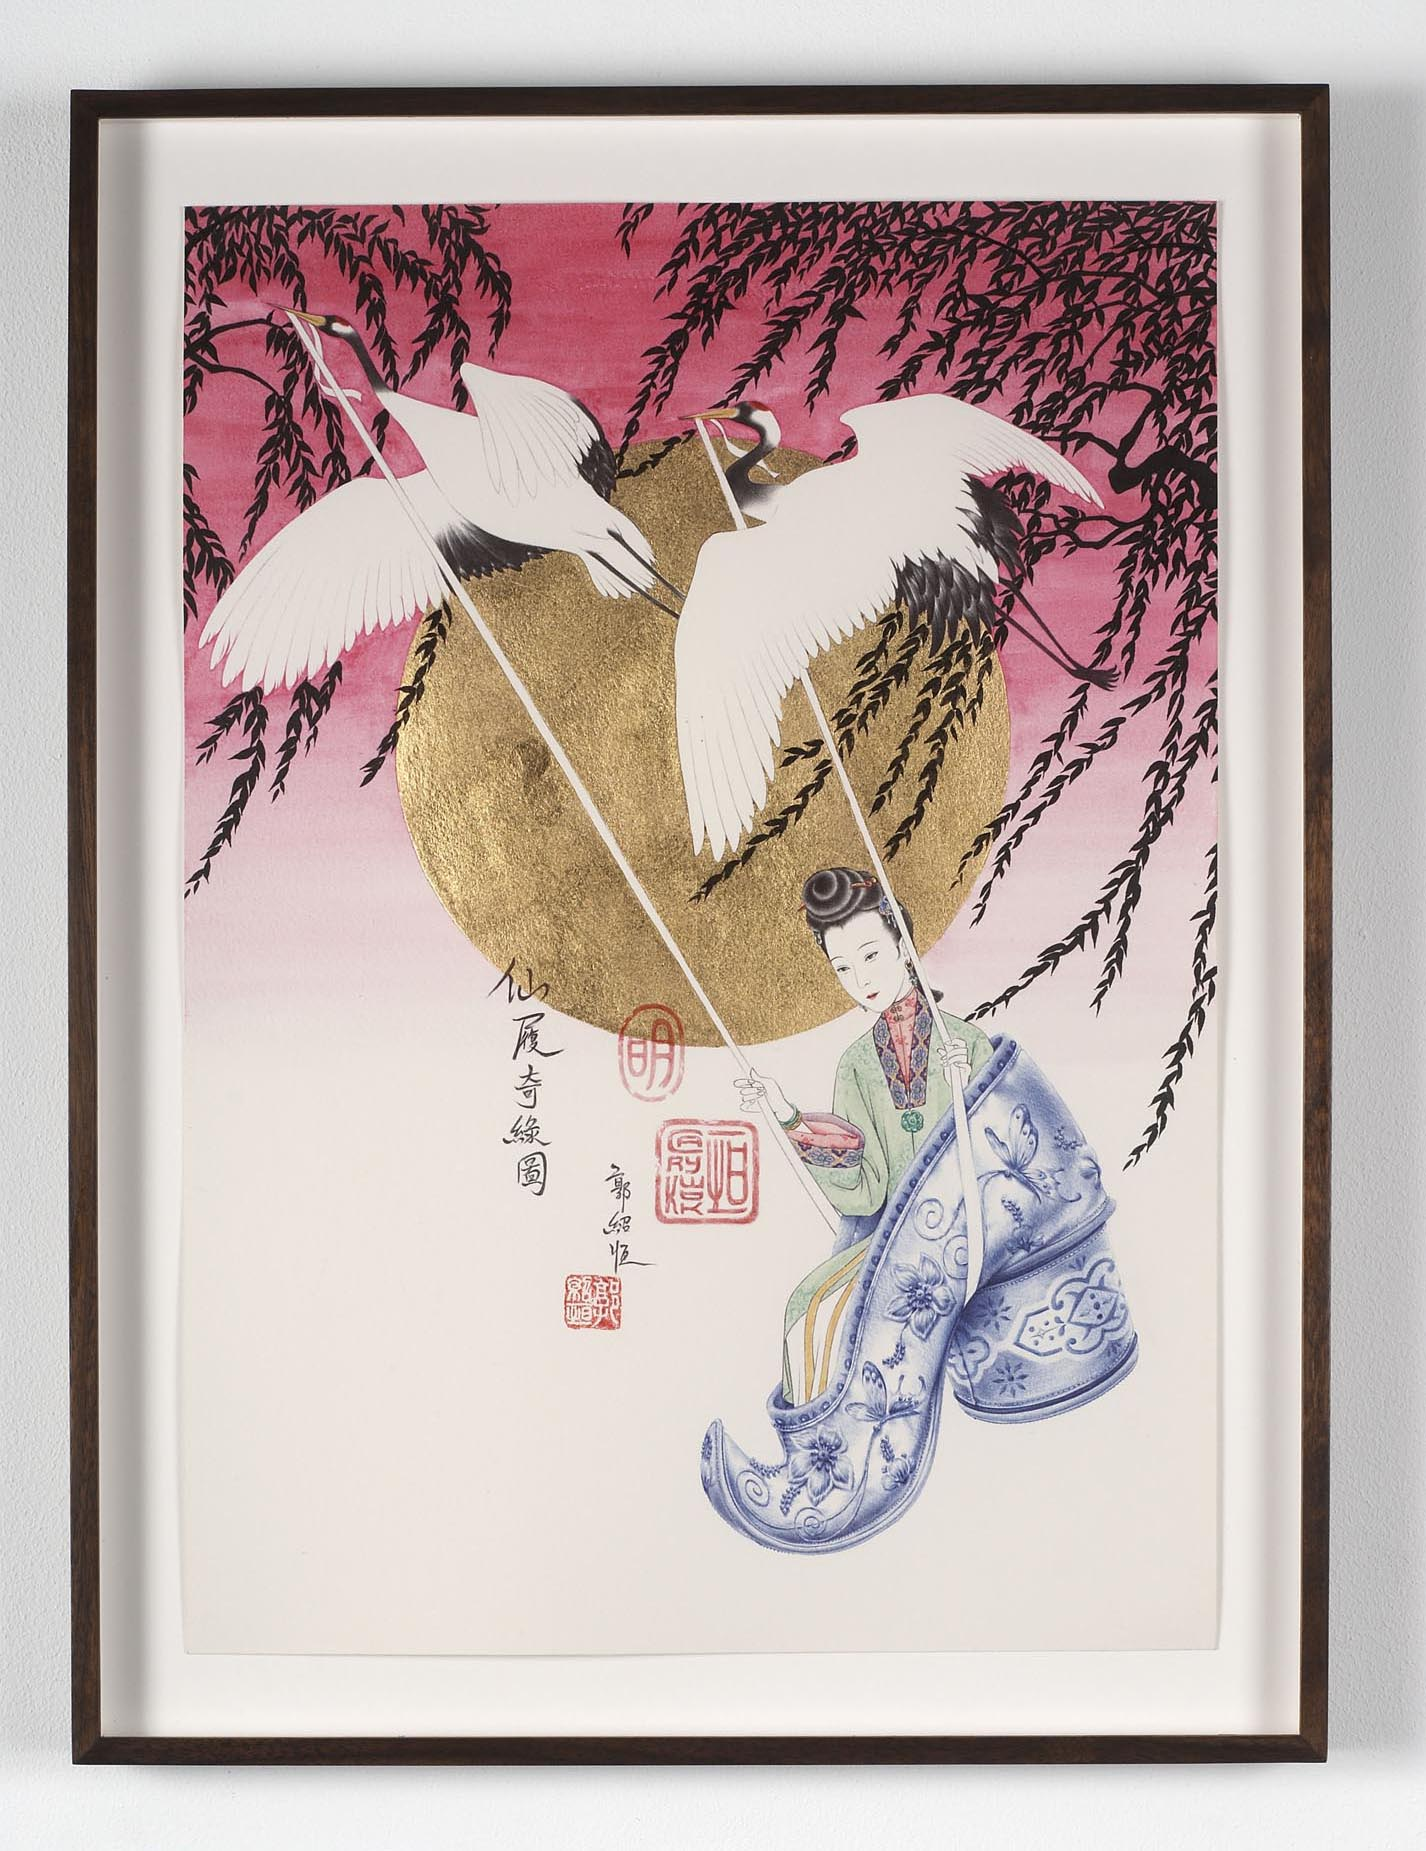 Desire - Chinese (Late Ming Dynasty) 2009 acrylic, ink, permanent marker and 23 3/4 Carat Gold leaf on paper 42 x 29.7 cm